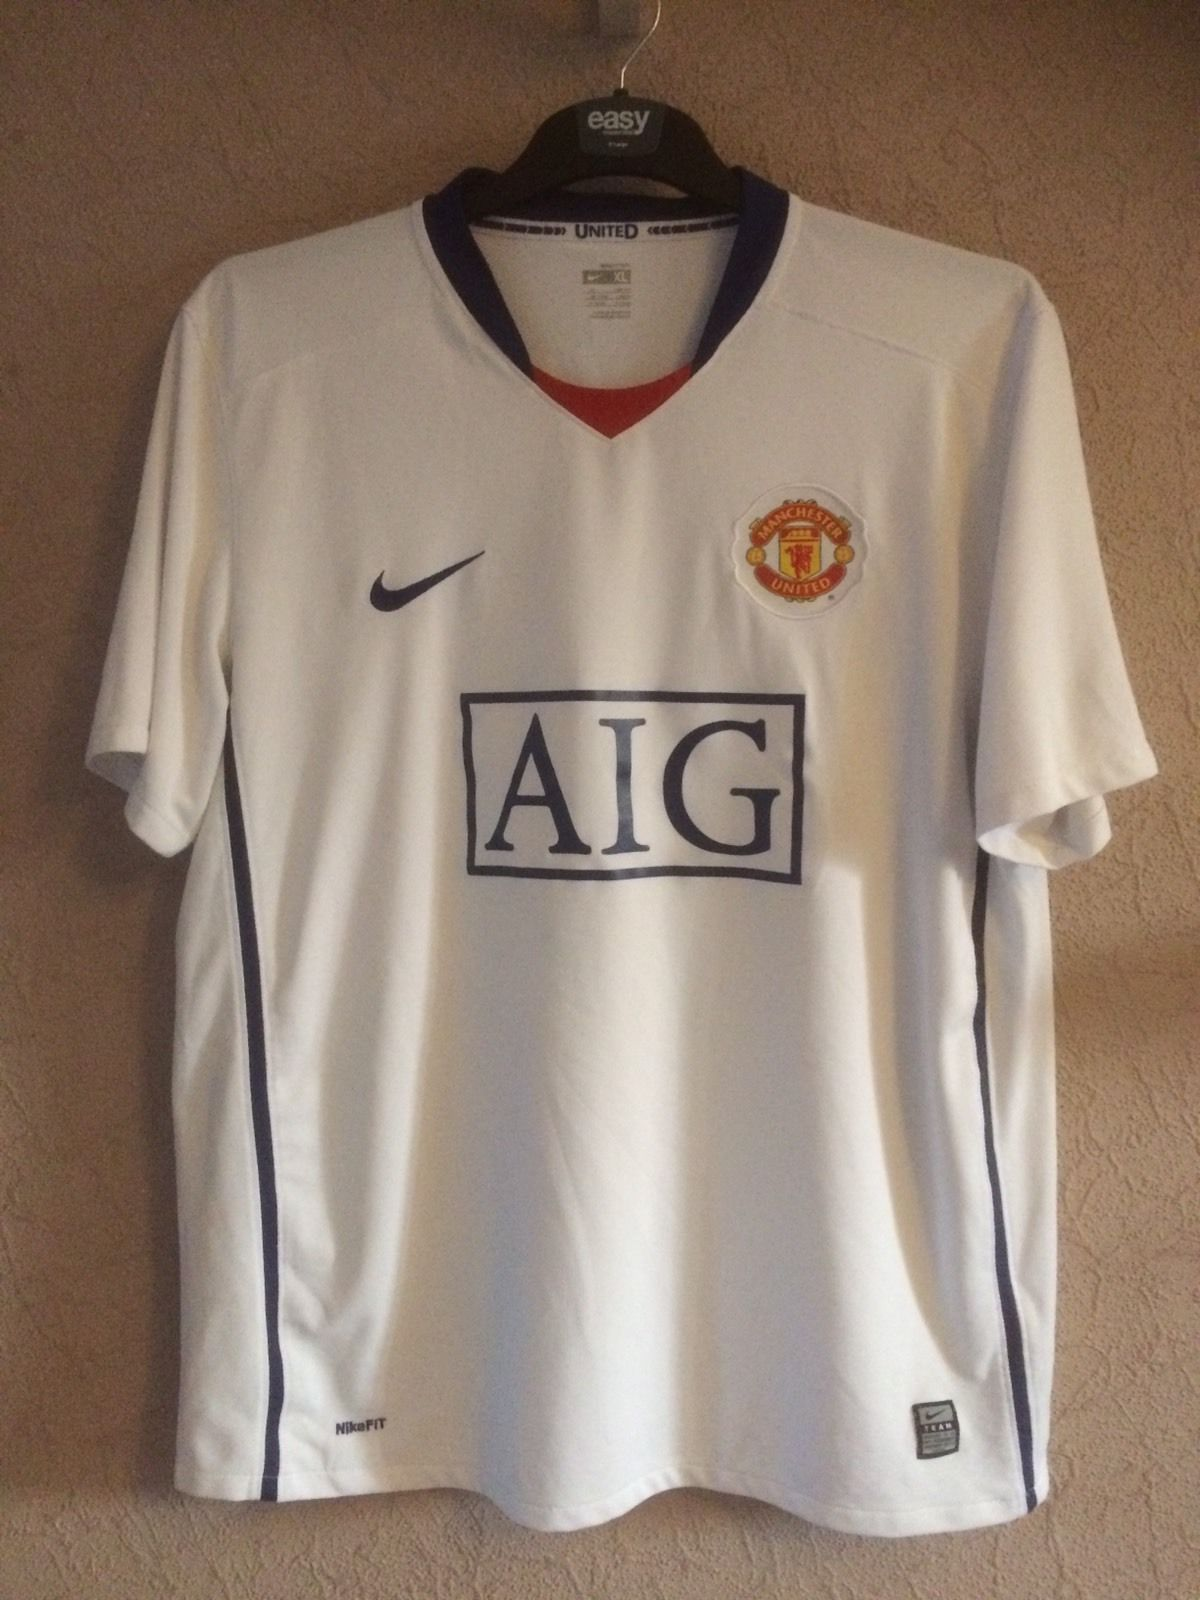 super popular a0176 248f2 Manchester United Carlos Tevez 32 Football Shirt 2008/09 Adults XL Nike